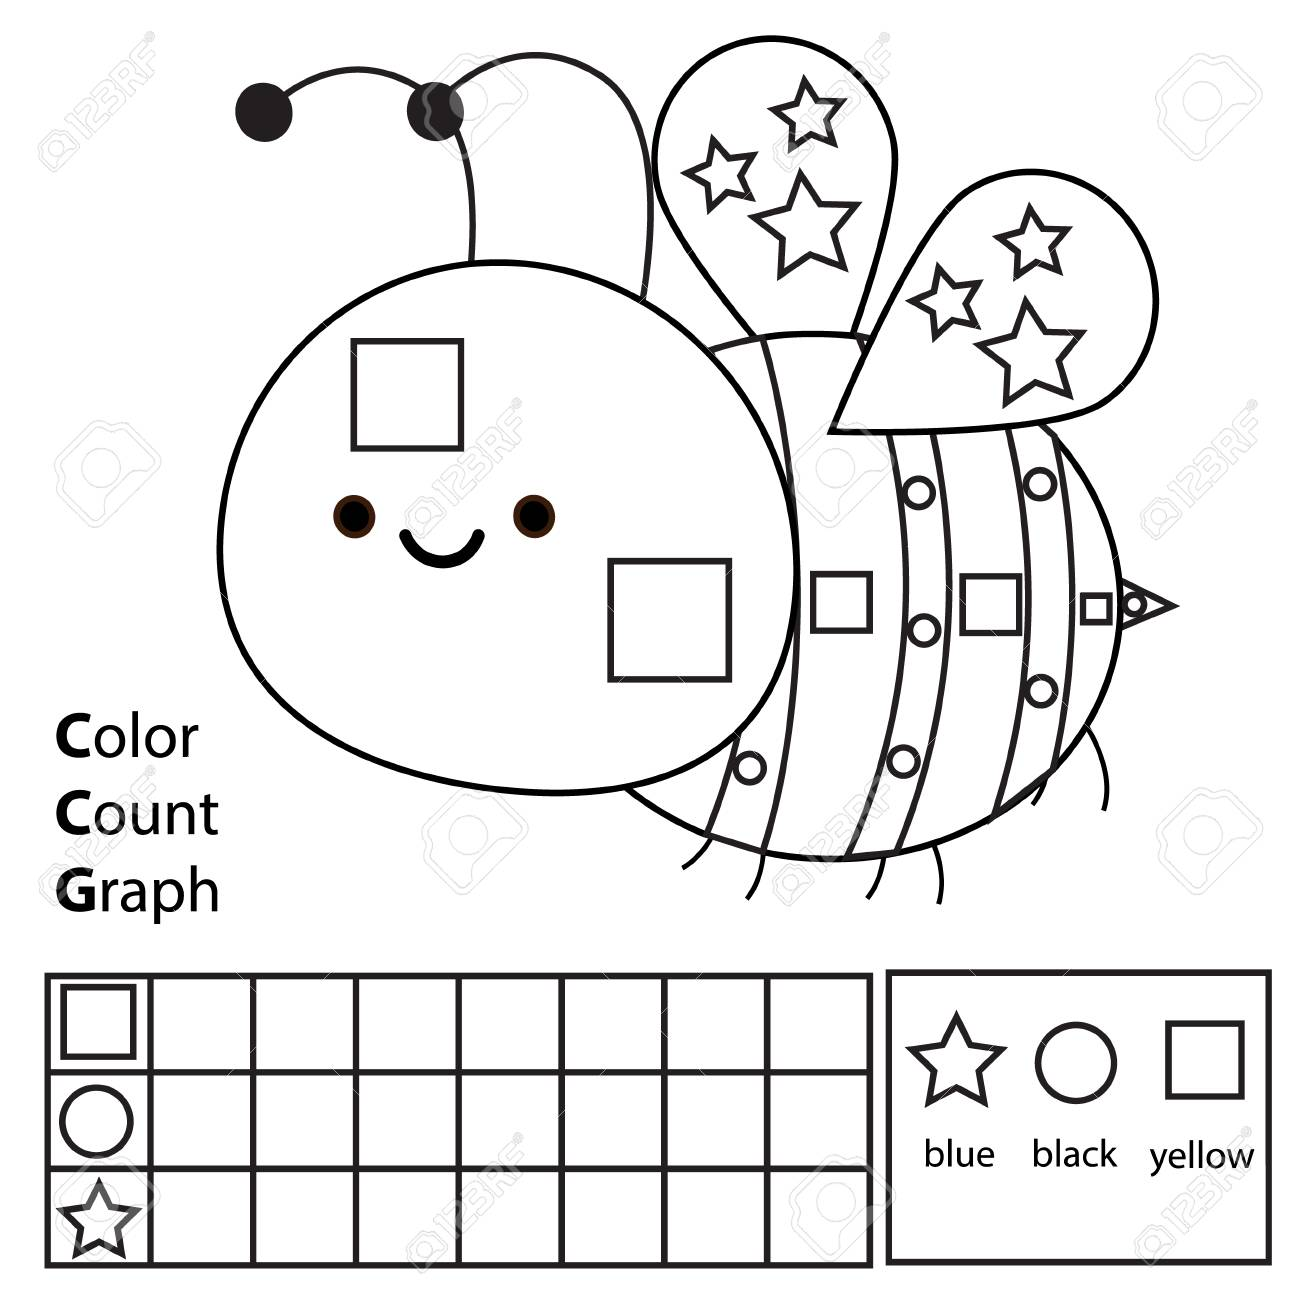 graphic about Shapes Printable named Colour, rely and graph. Enlightening little ones match. Coloration cartoon..